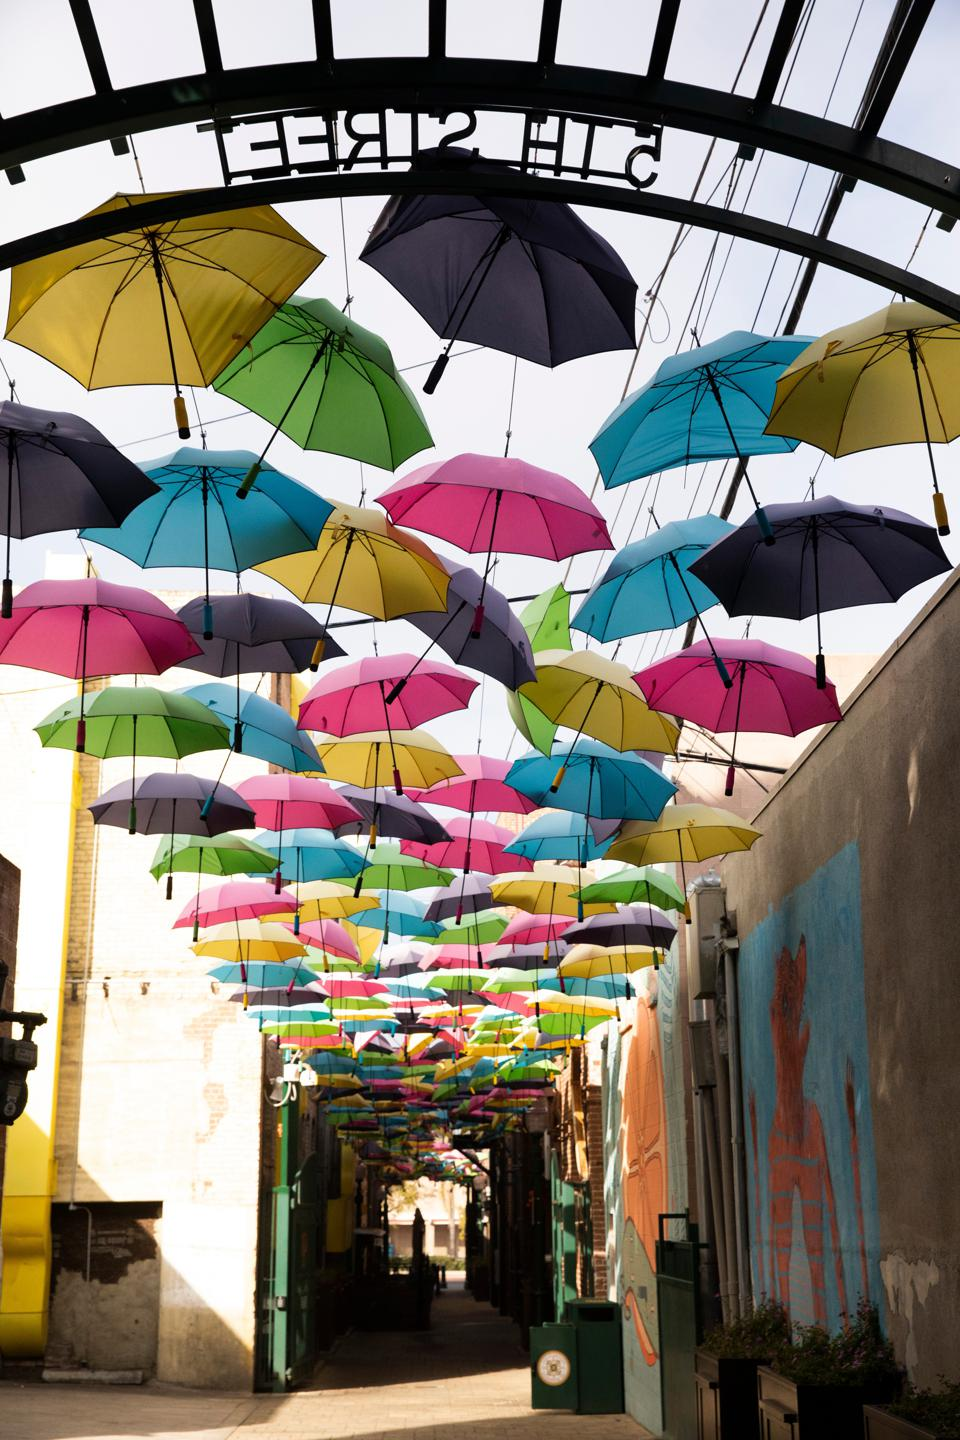 Umbrellas in an alley